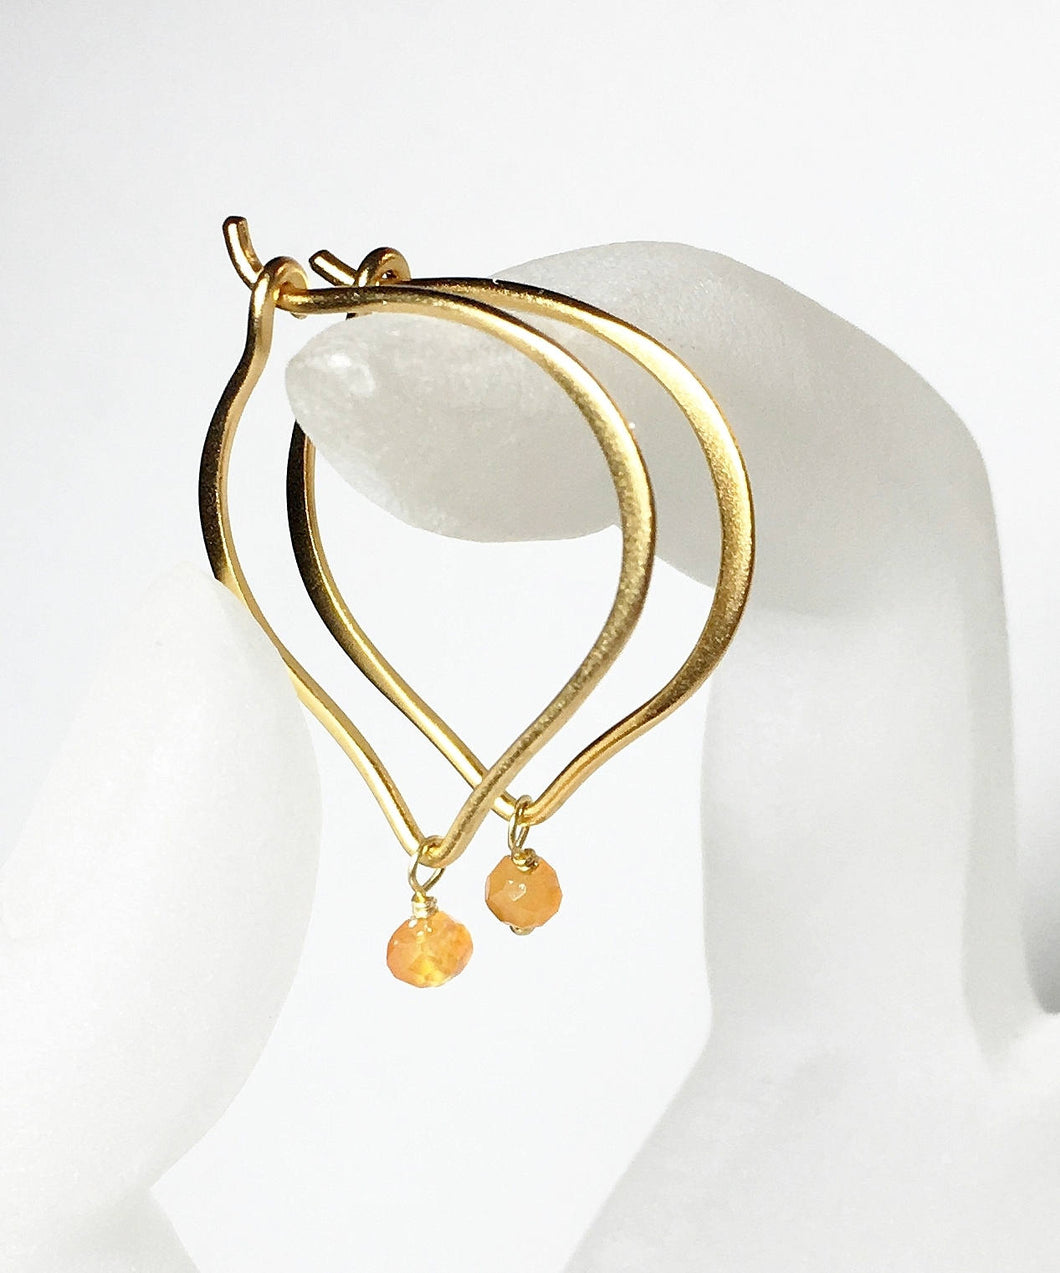 Gold Hoop Earrings, Carnelian Gemstone Lotus Ear Wires, Gifts for Her, Simple Earrings, Everyday Jewelry, Medium or Large - MiShelli